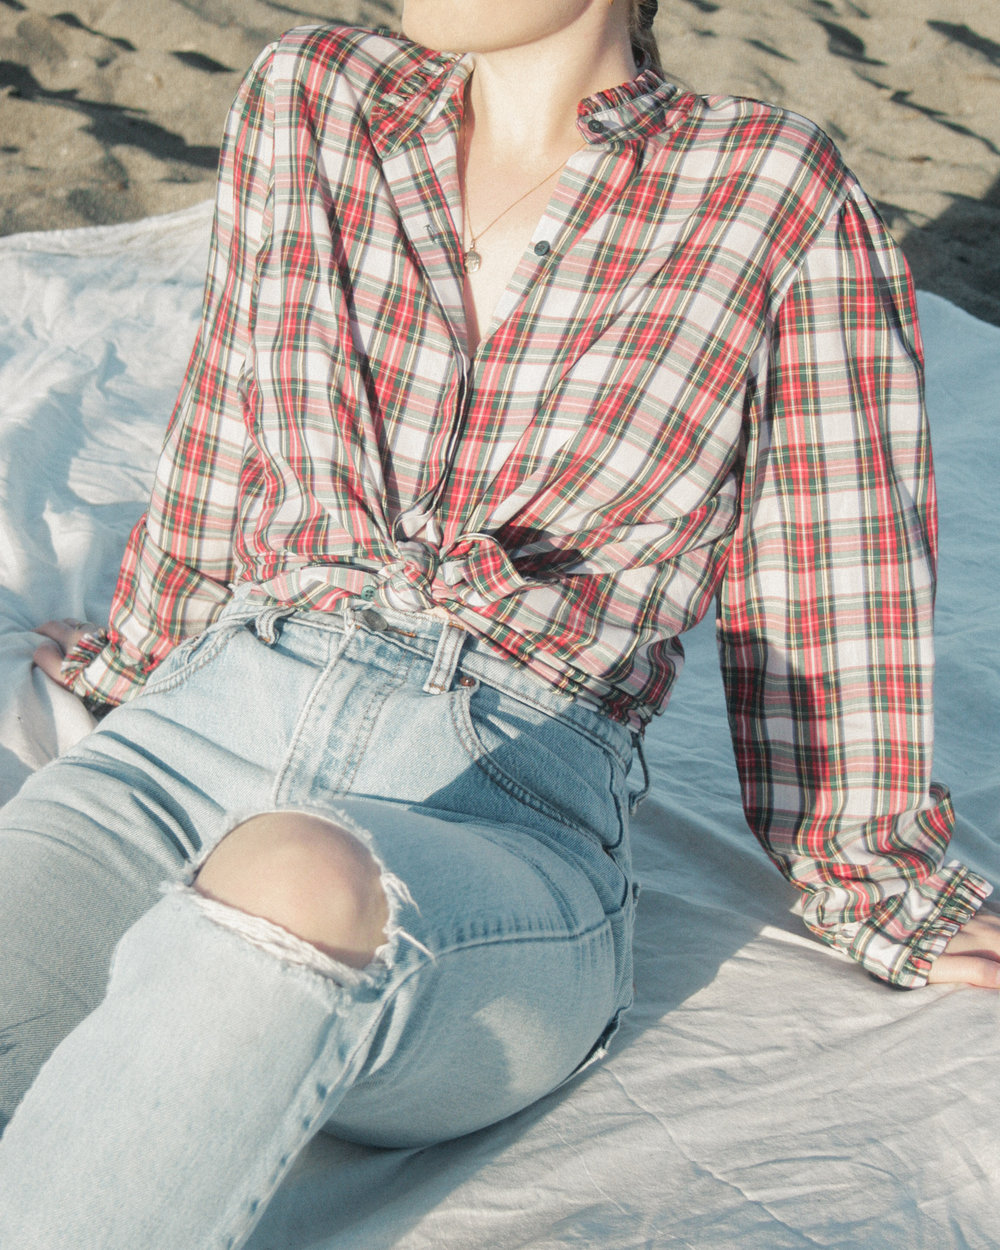 e53007f0 CHECK PLAID BUTTON UP BLOUSE WITH RUFFLE EDGE DETAIL